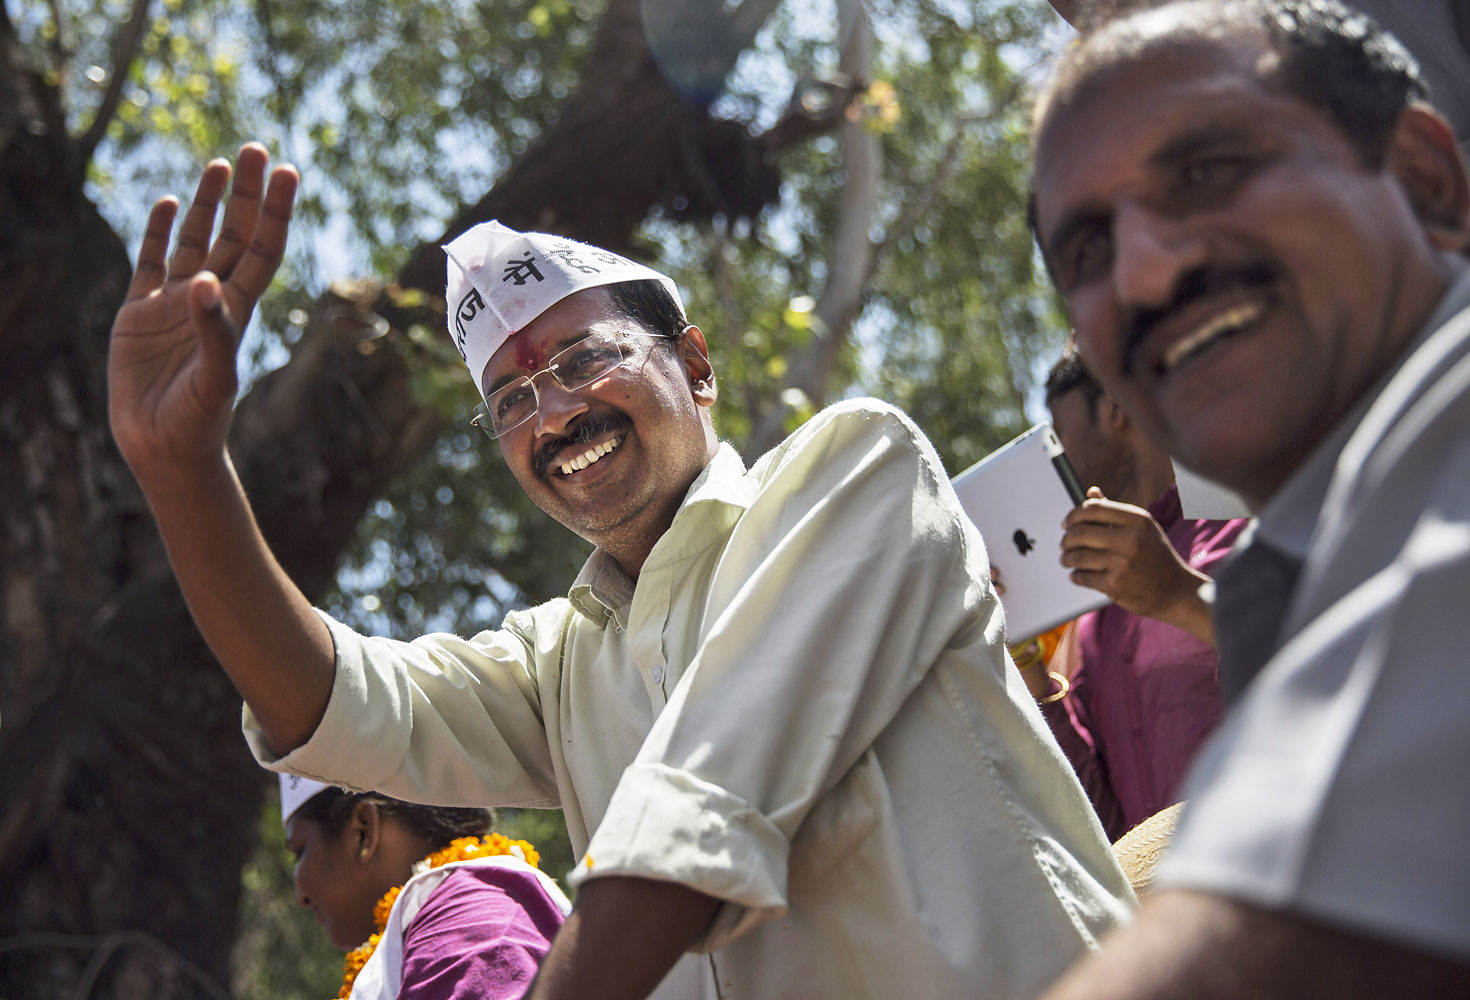 Leader of the AAP and anti-corruption activist  Arvind Kejriwal waves to supporters while campaigning on April 8, 2014 in New Delhi.